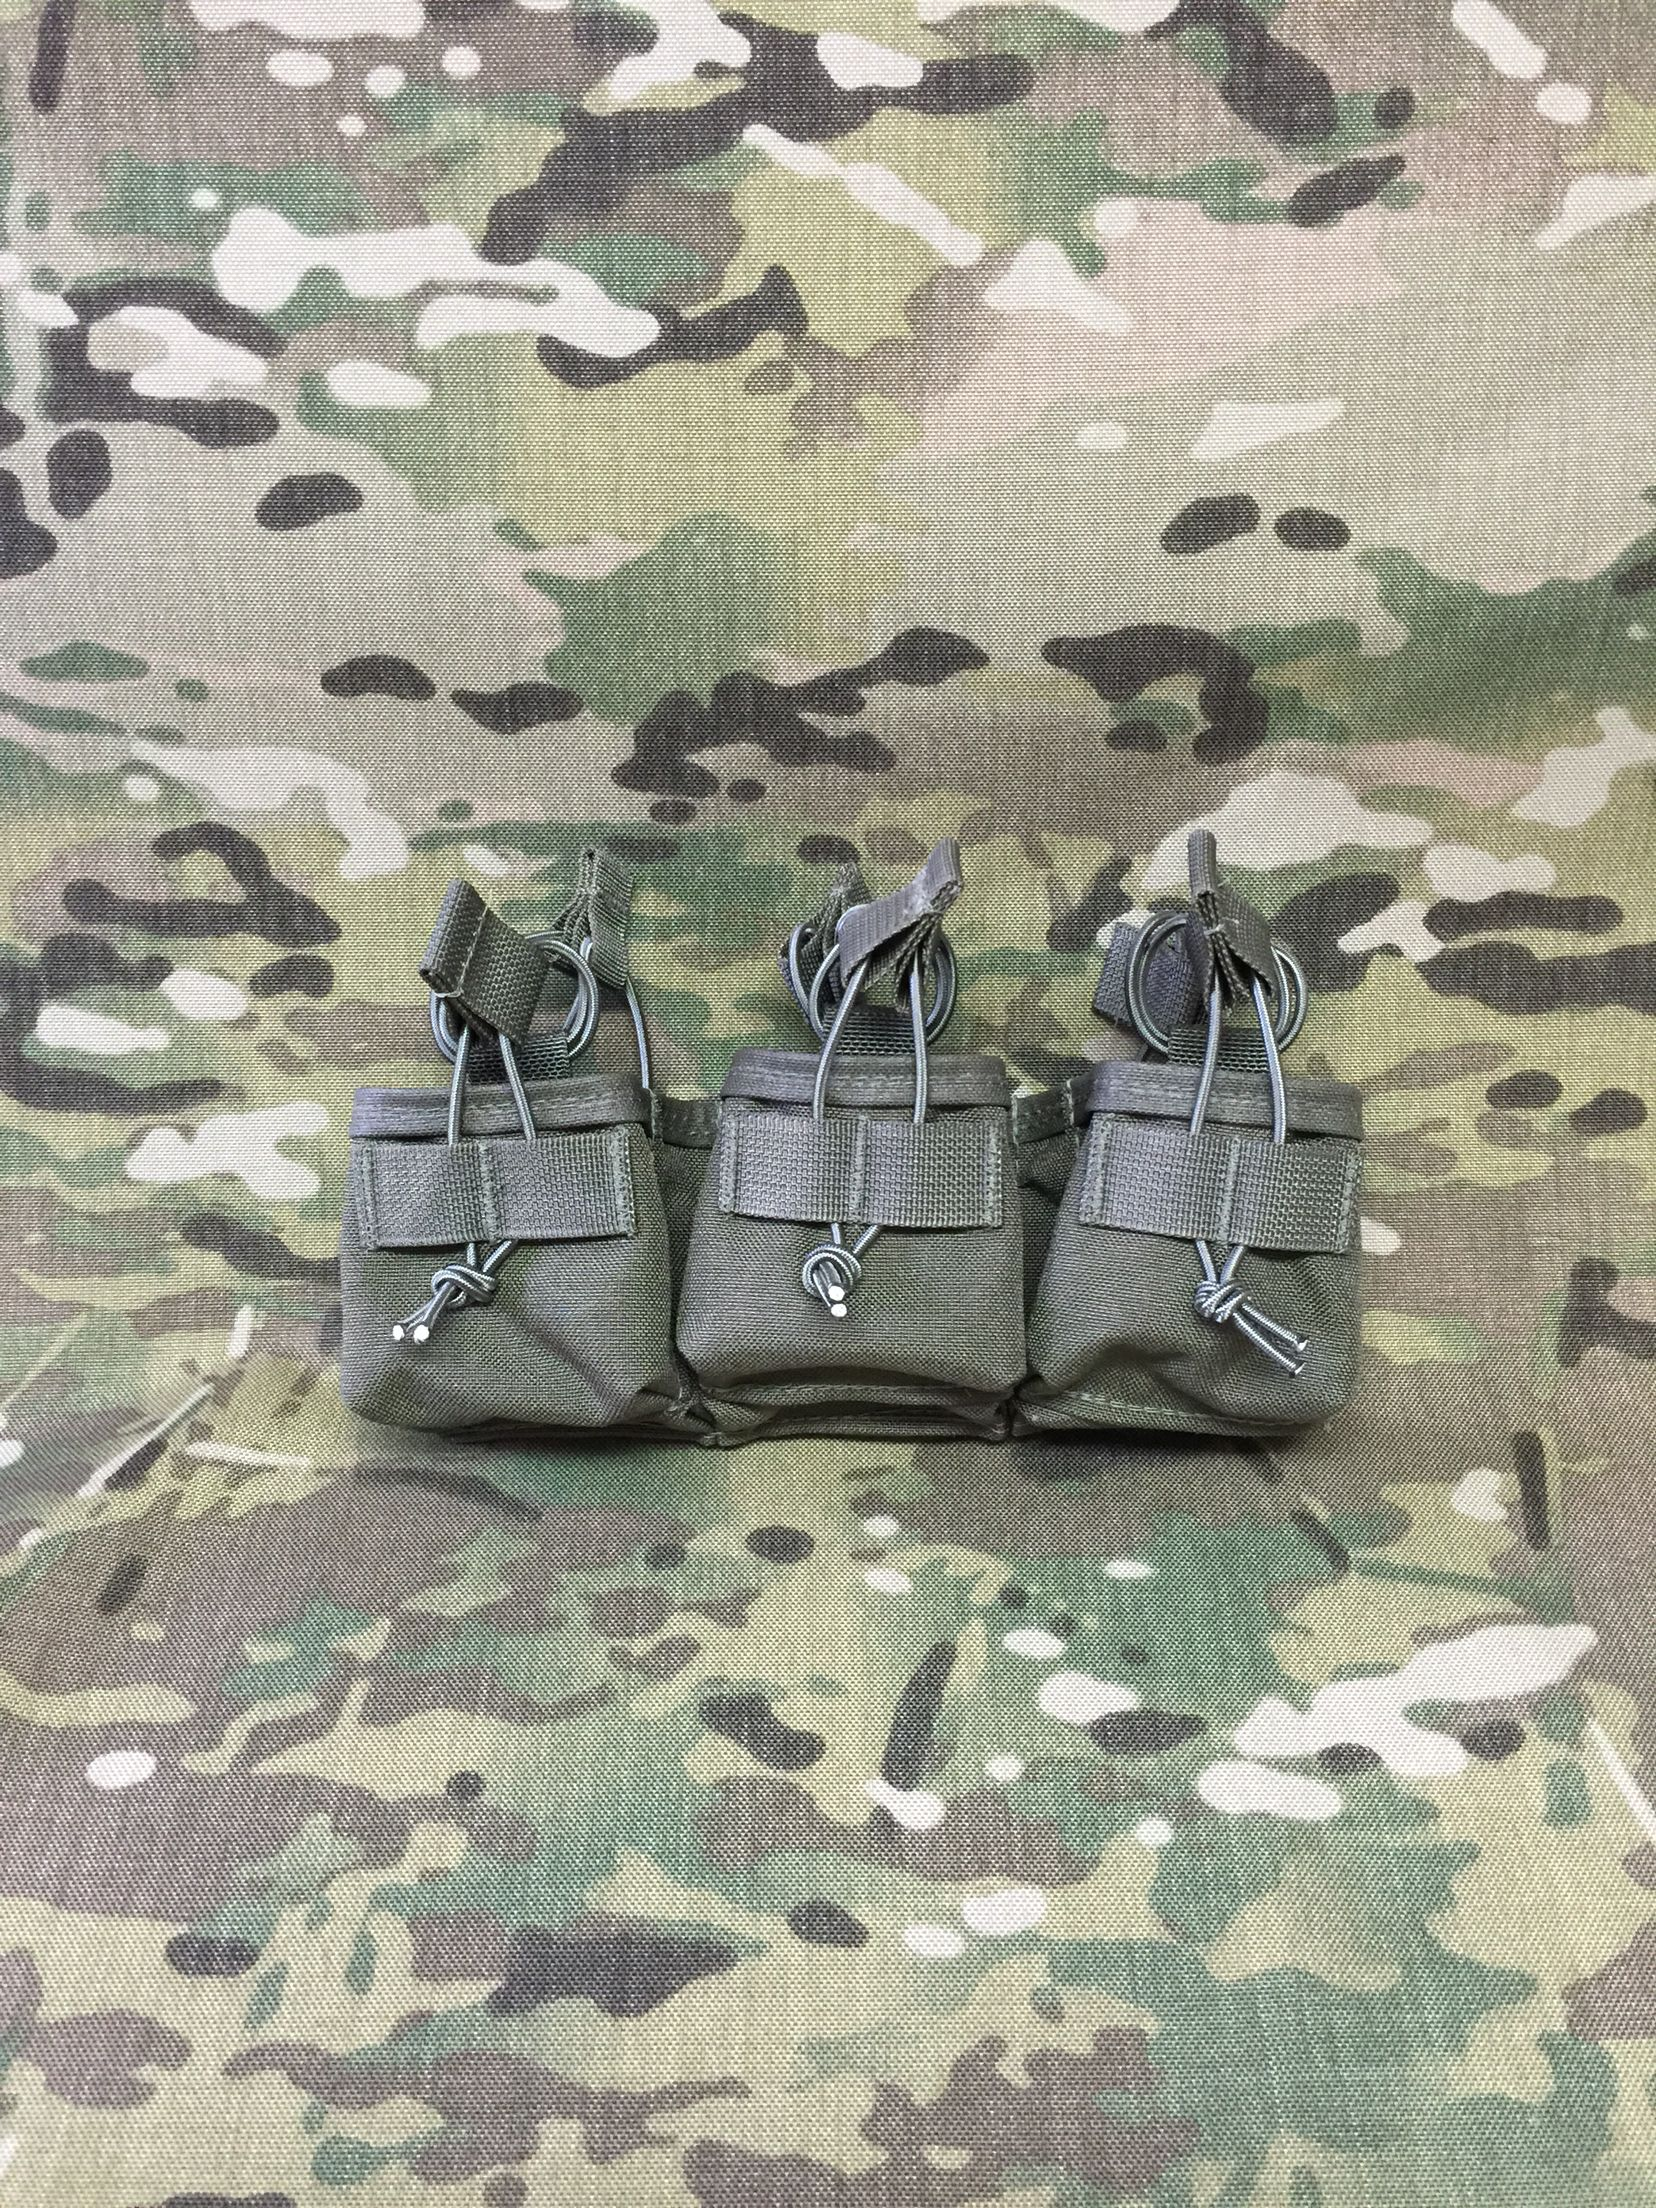 10 round ar15 six pack magazine pouch three wide by two deep